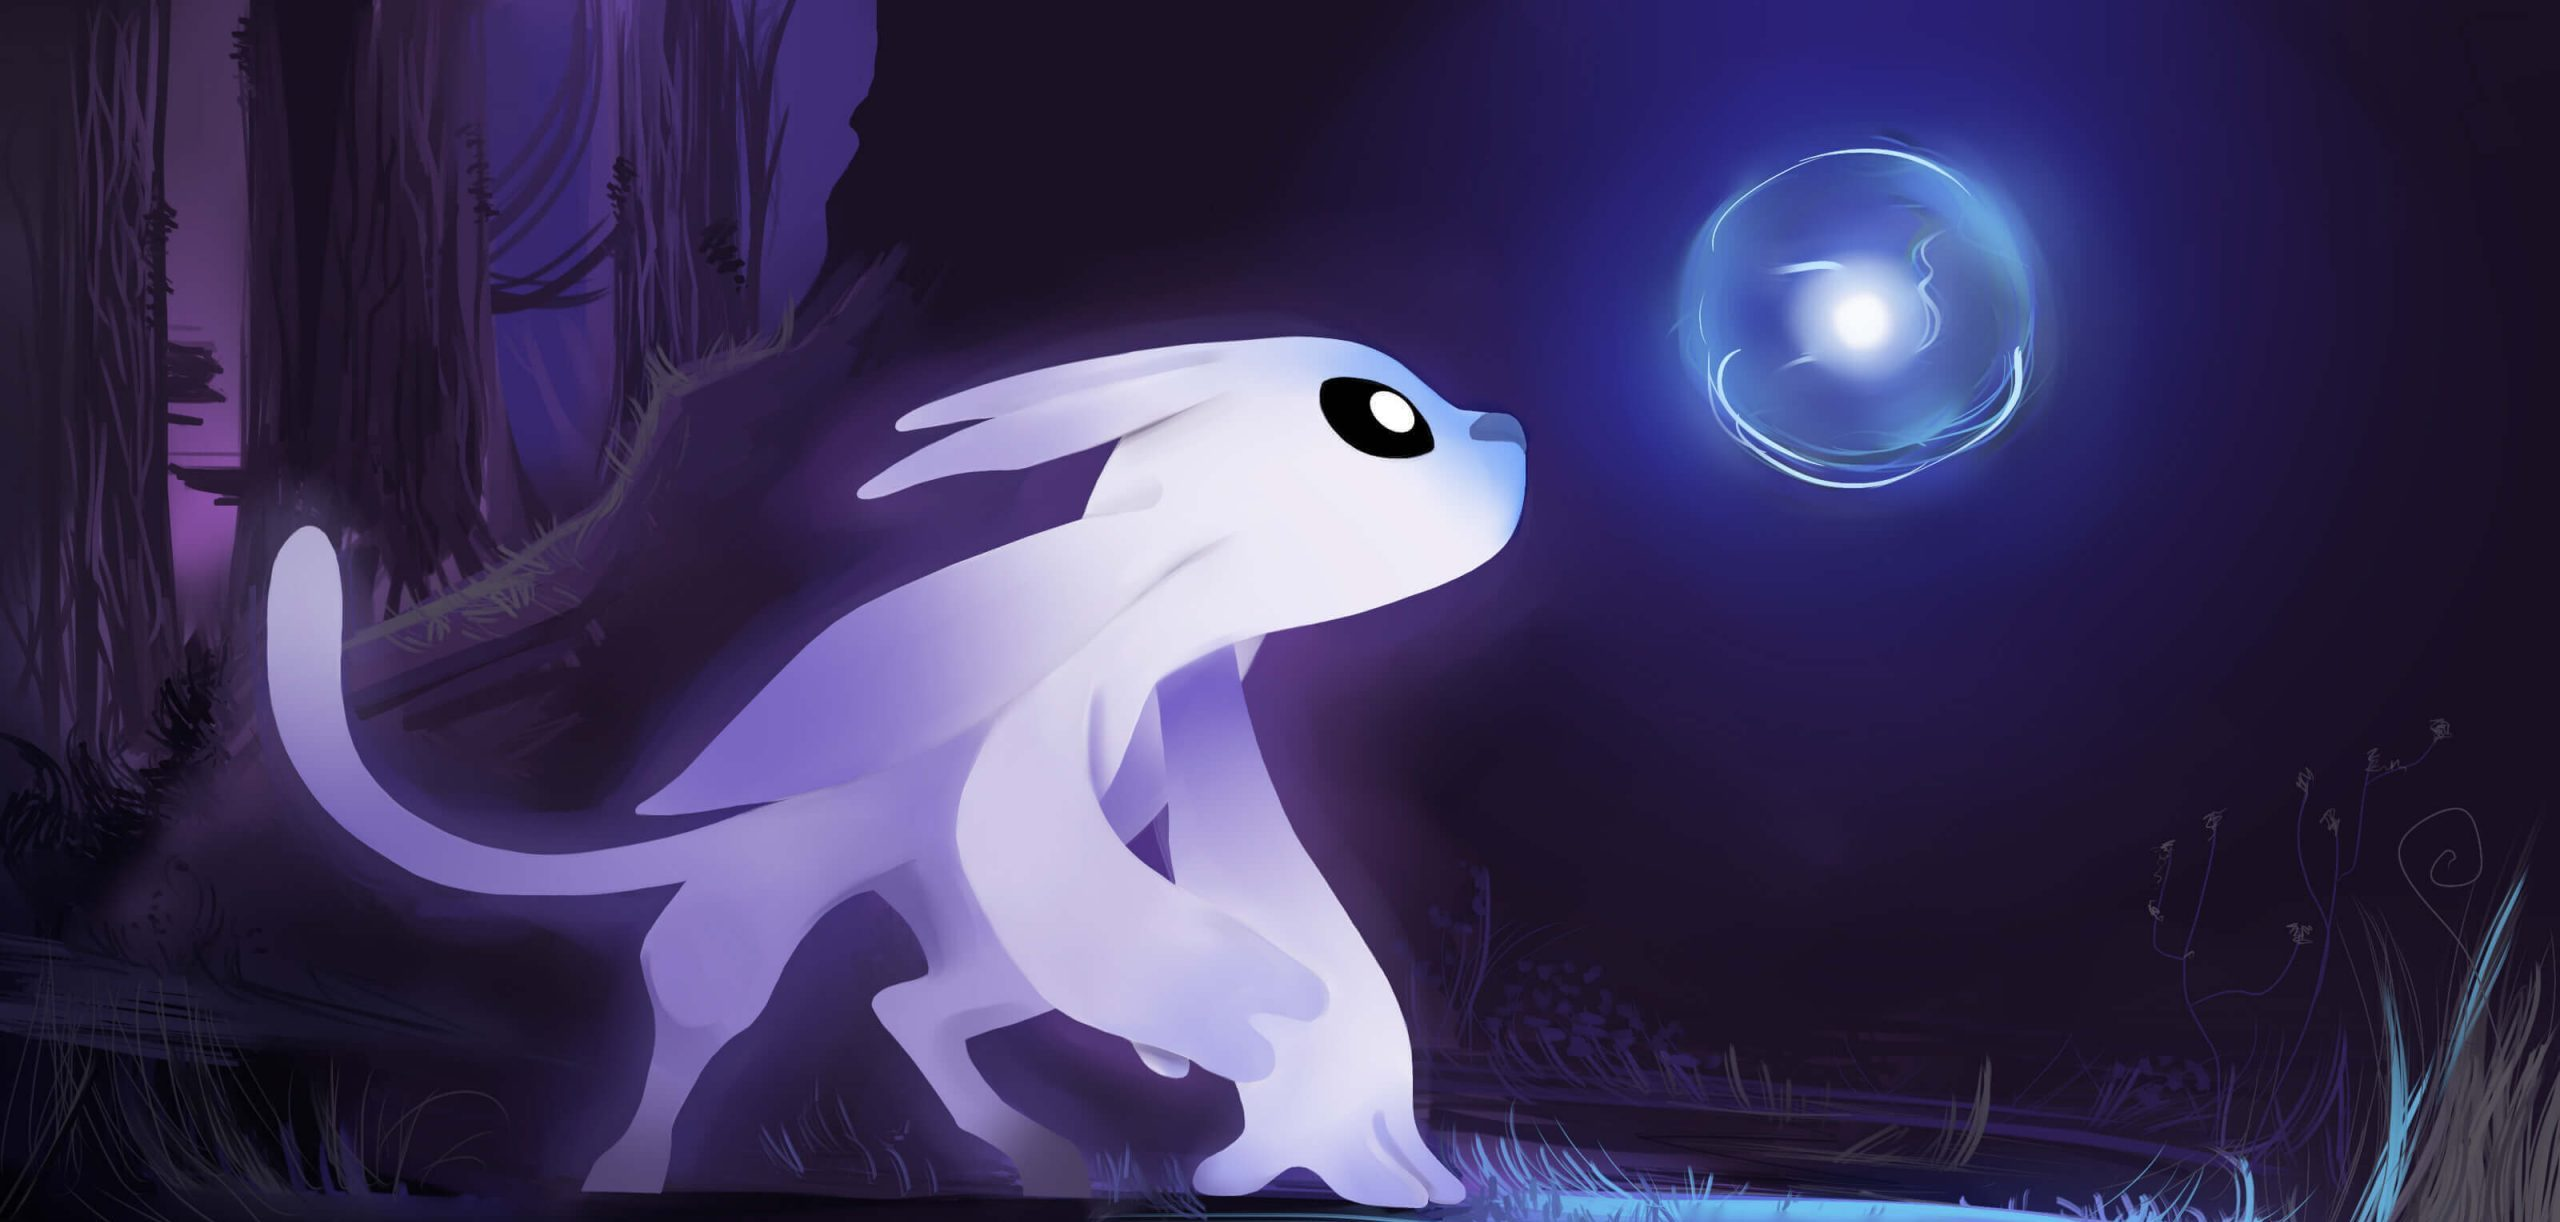 Ori and the blind forest review MejoresJuegosOnline.com